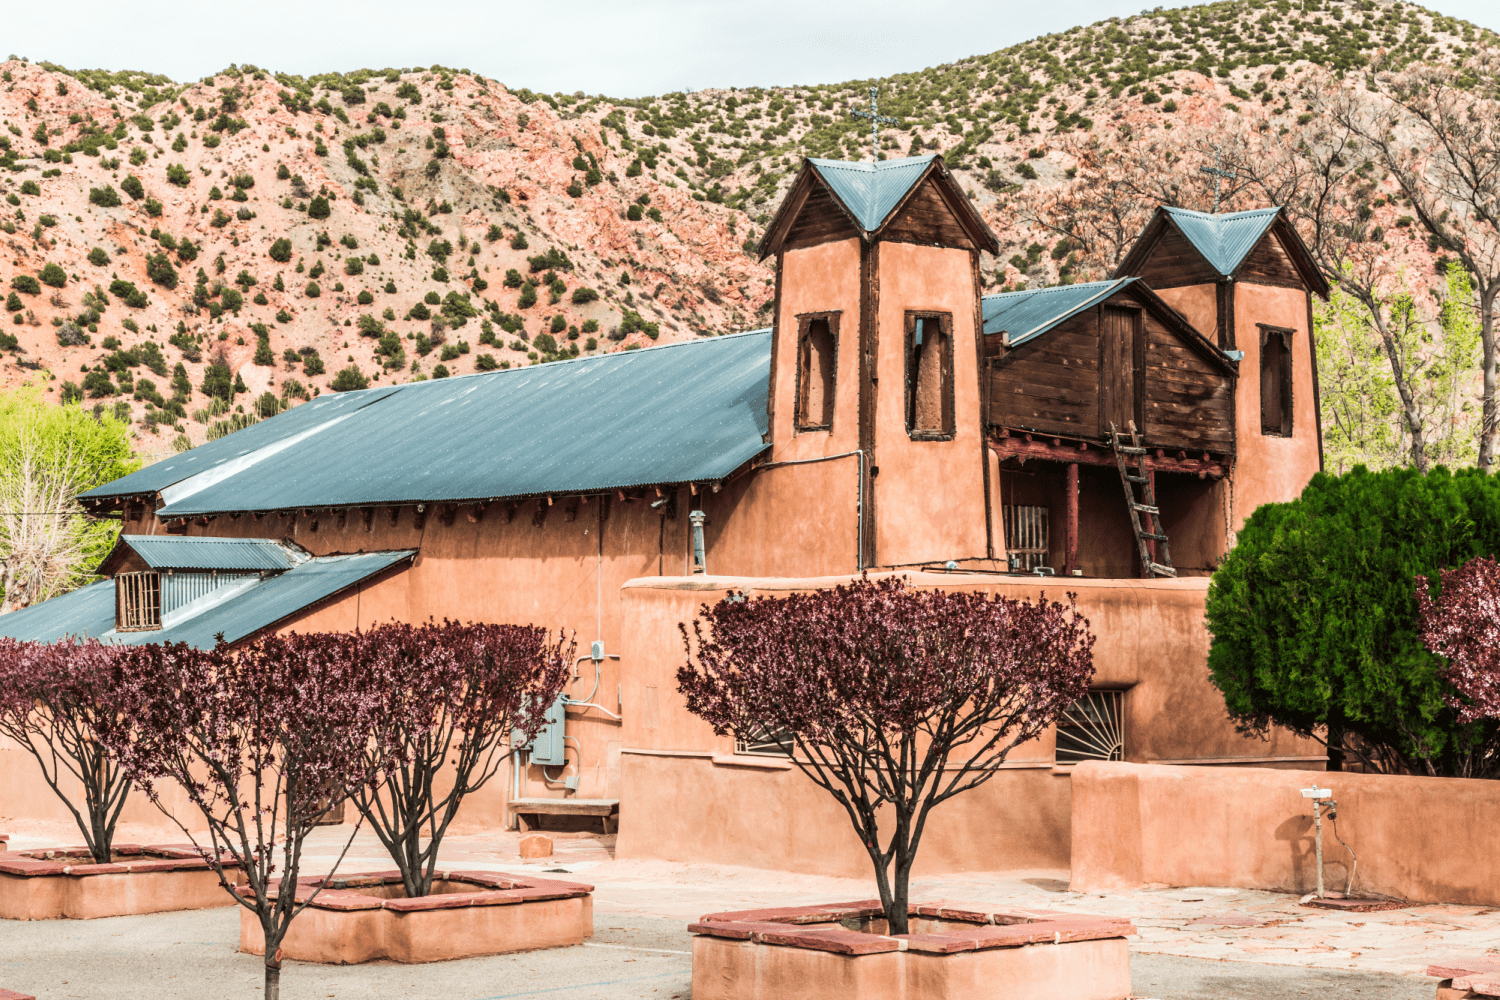 Chimayo, NM Pilgrimage